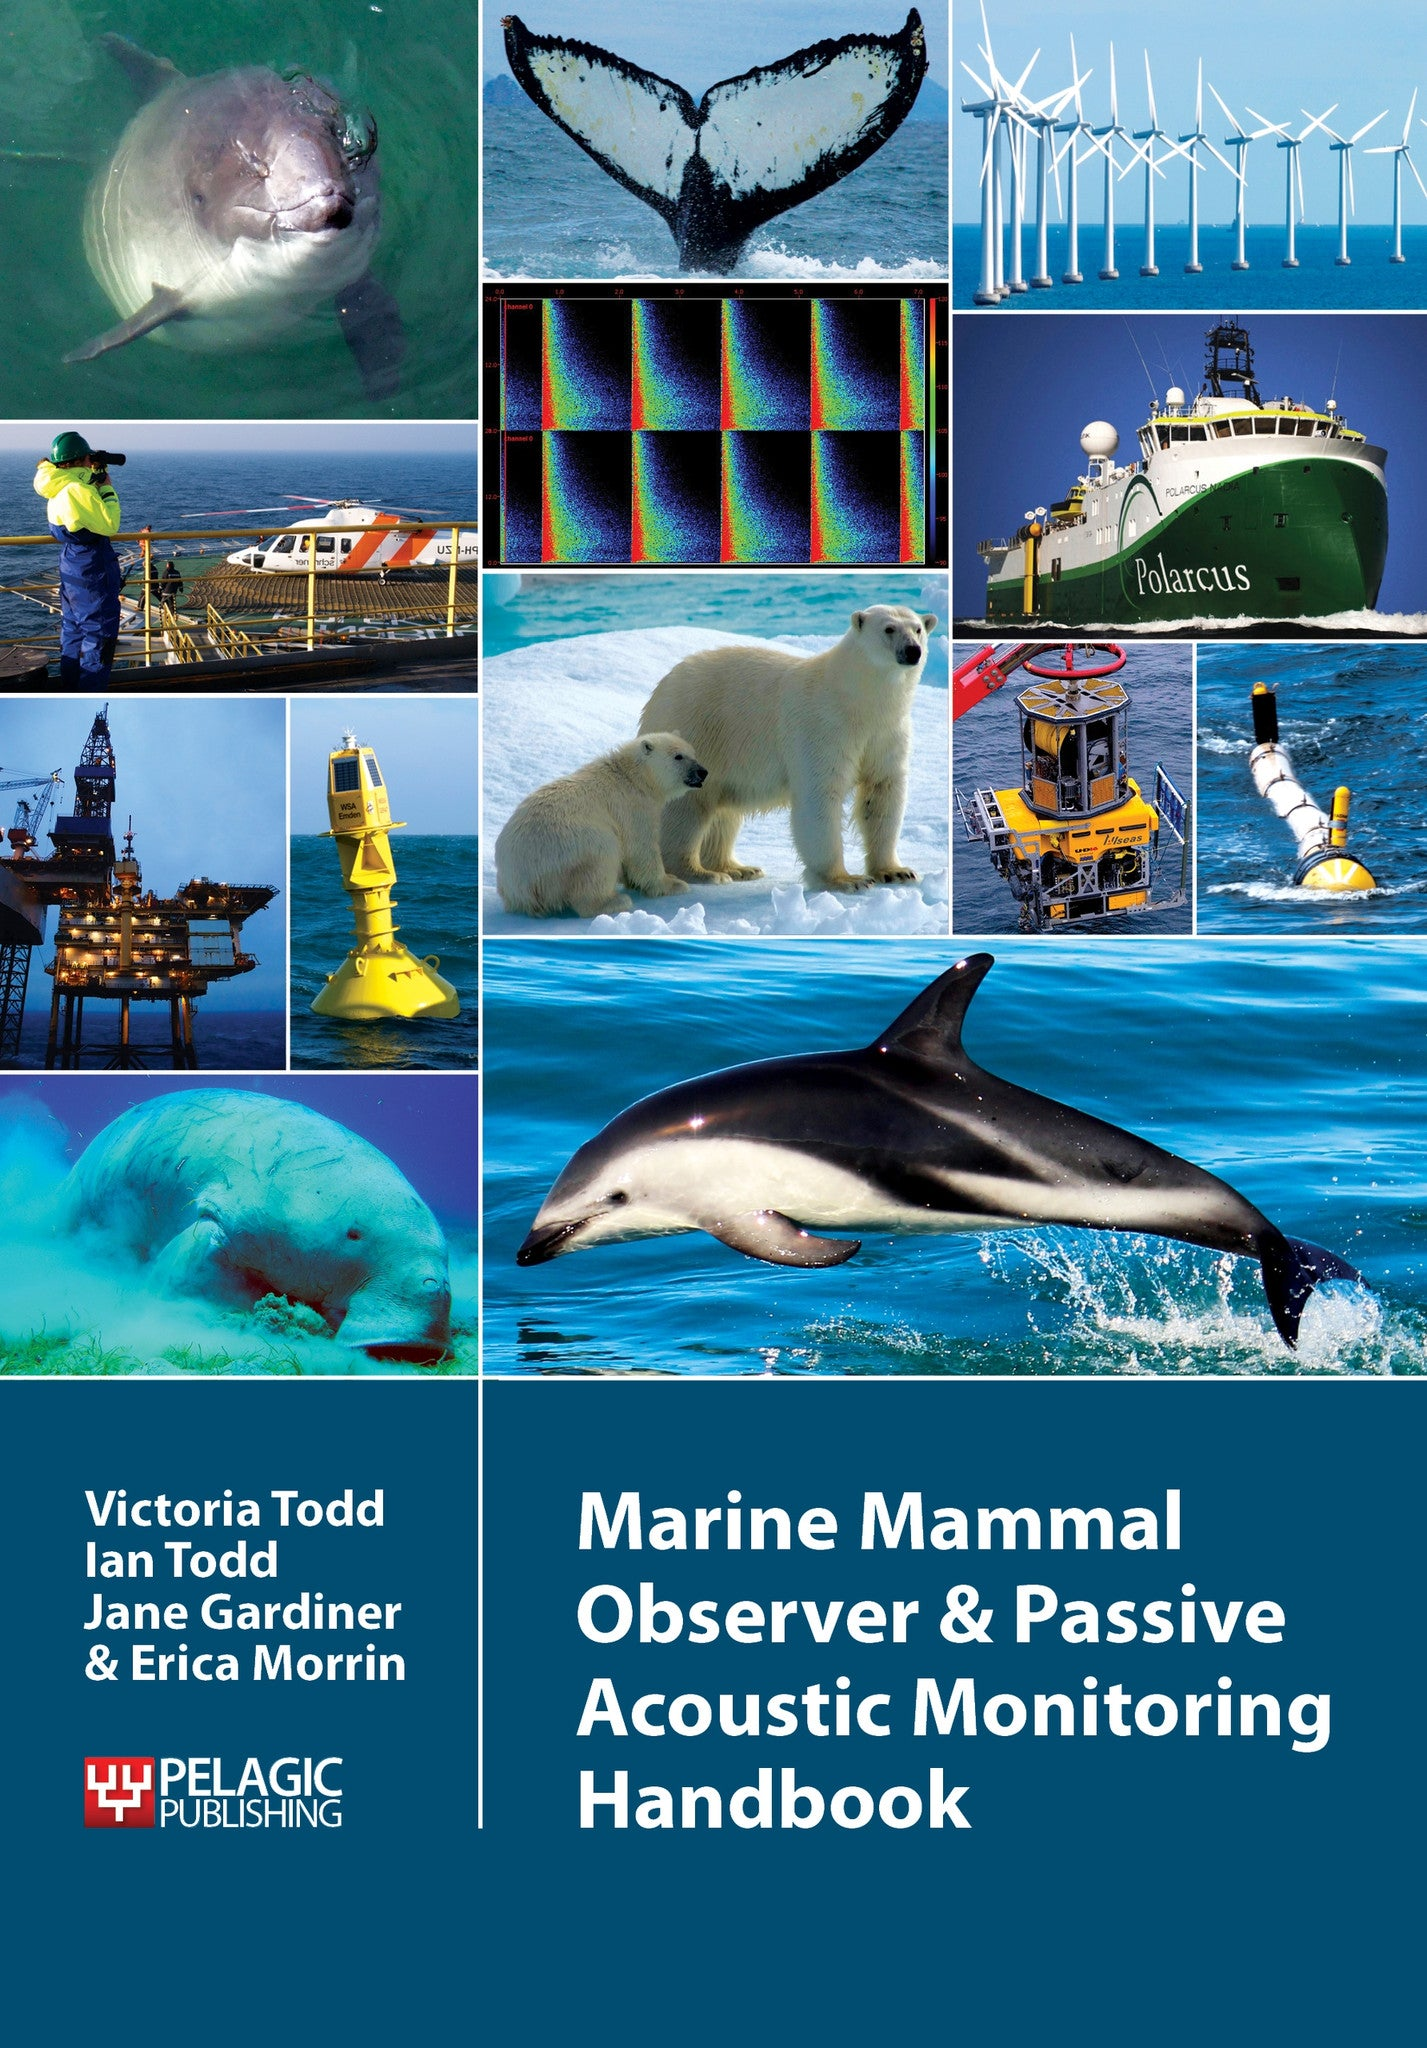 Marine Mammal Observer and Passive Acoustic Monitoring Handbook - Pelagic Publishing